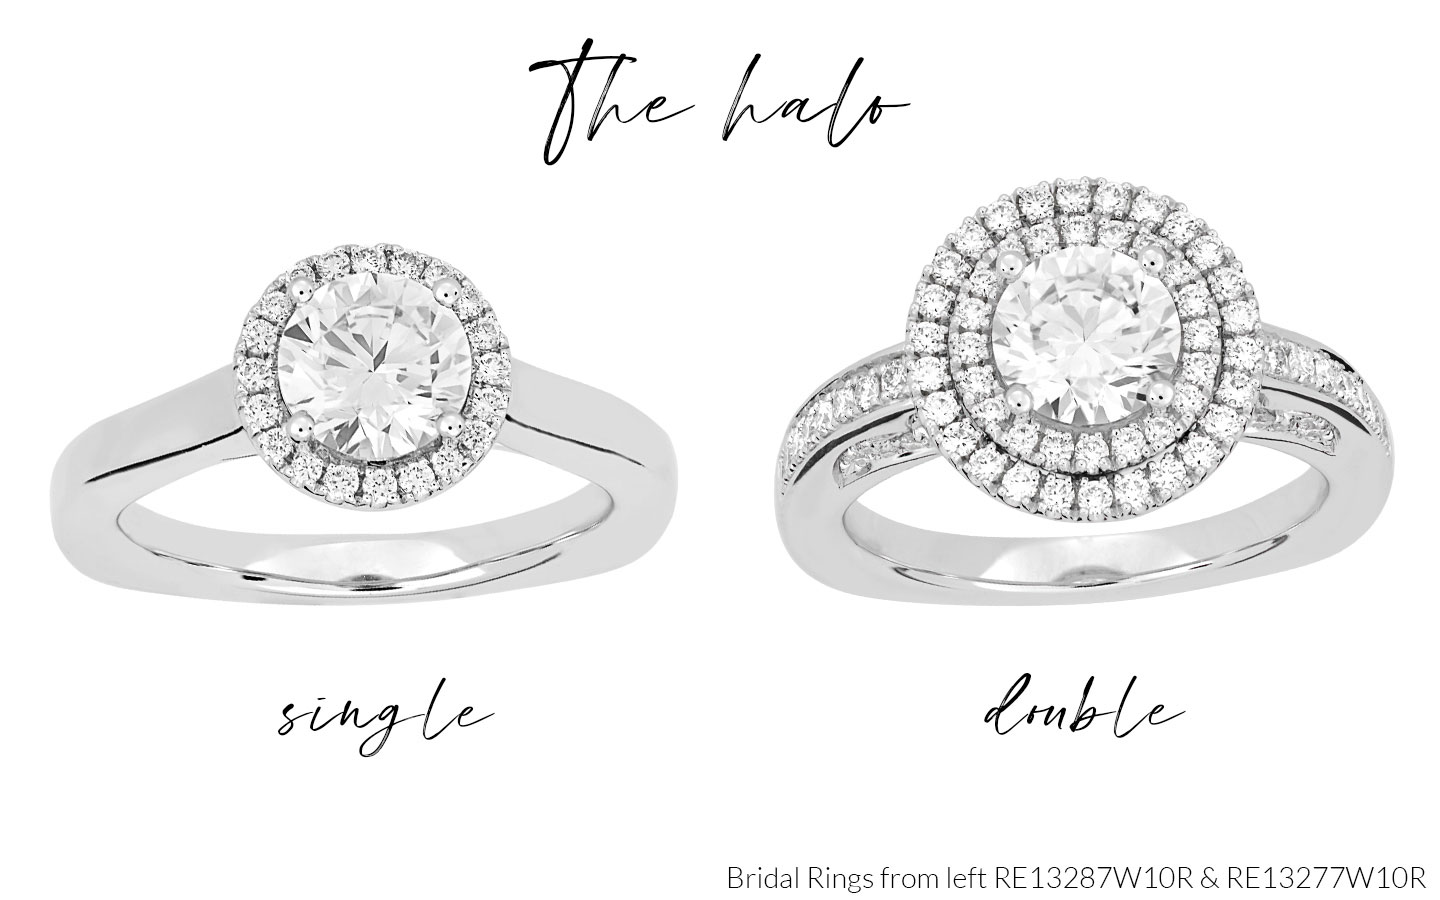 Halo Bridal Rings RE13287W10R and RE13277W10R